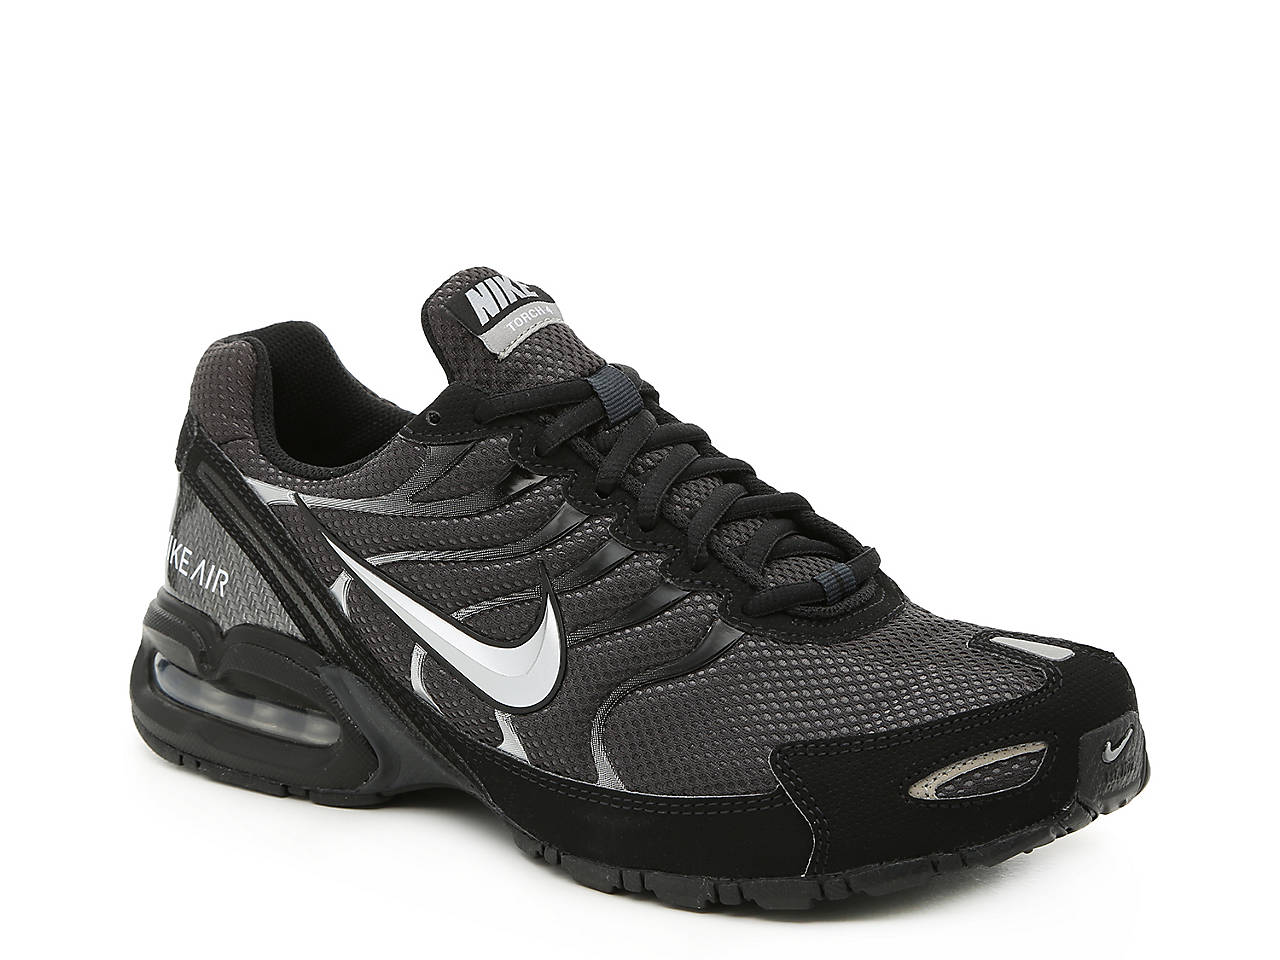 cbcfb0a084 Nike Air Max Torch 4 Running Shoe - Men's Men's Shoes | DSW